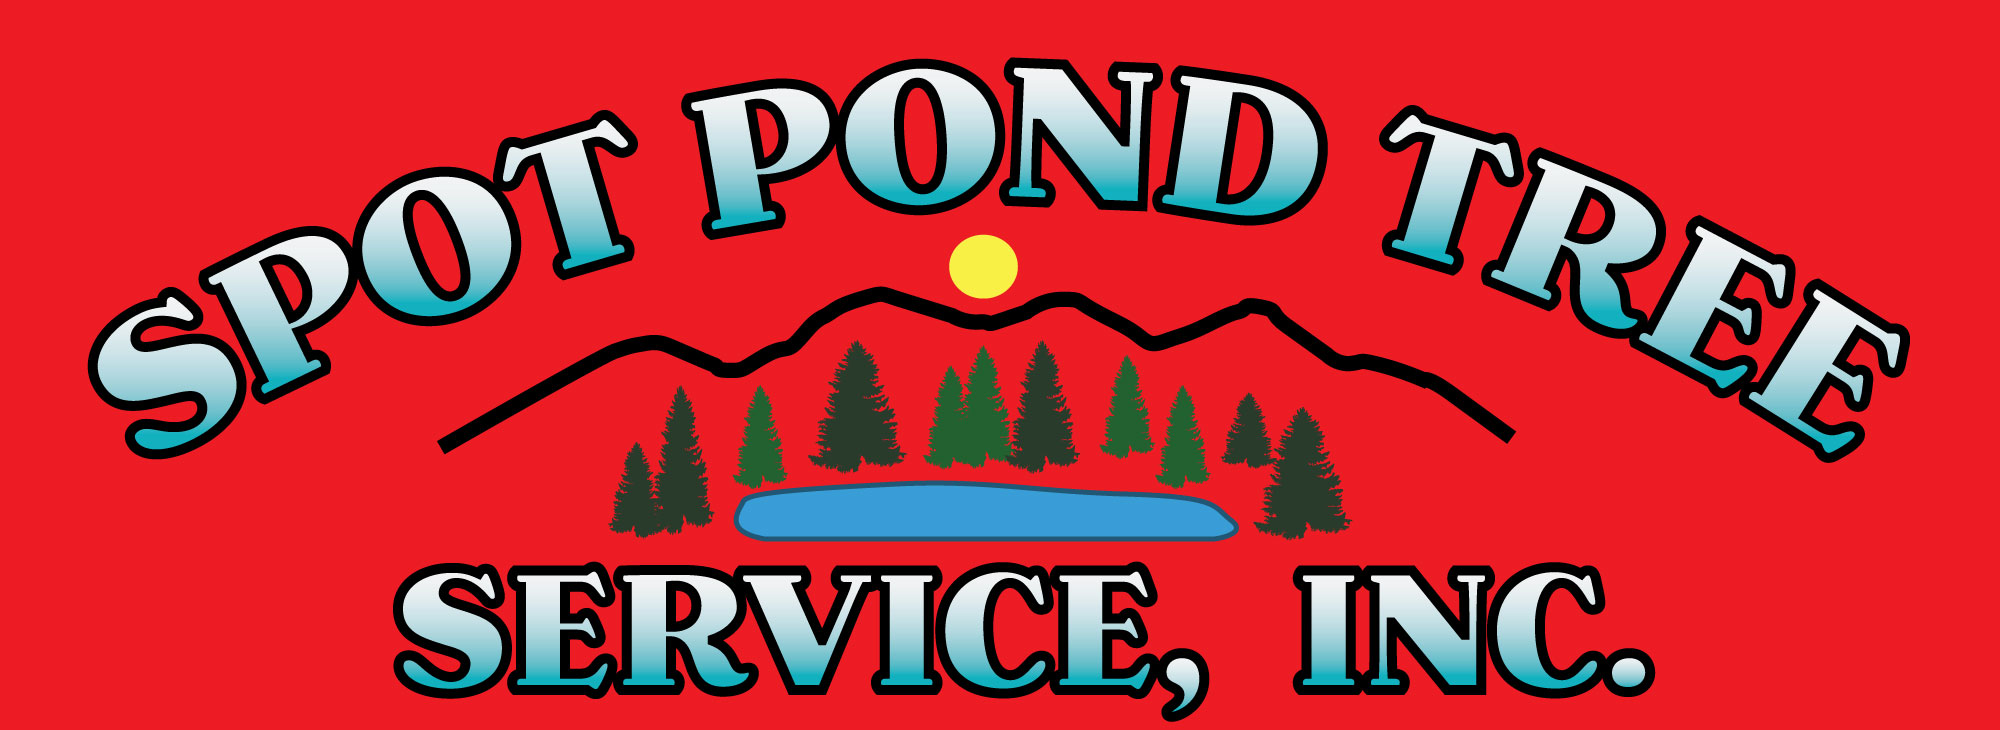 Spot Pond Tree Service, Inc. - New Hampshire